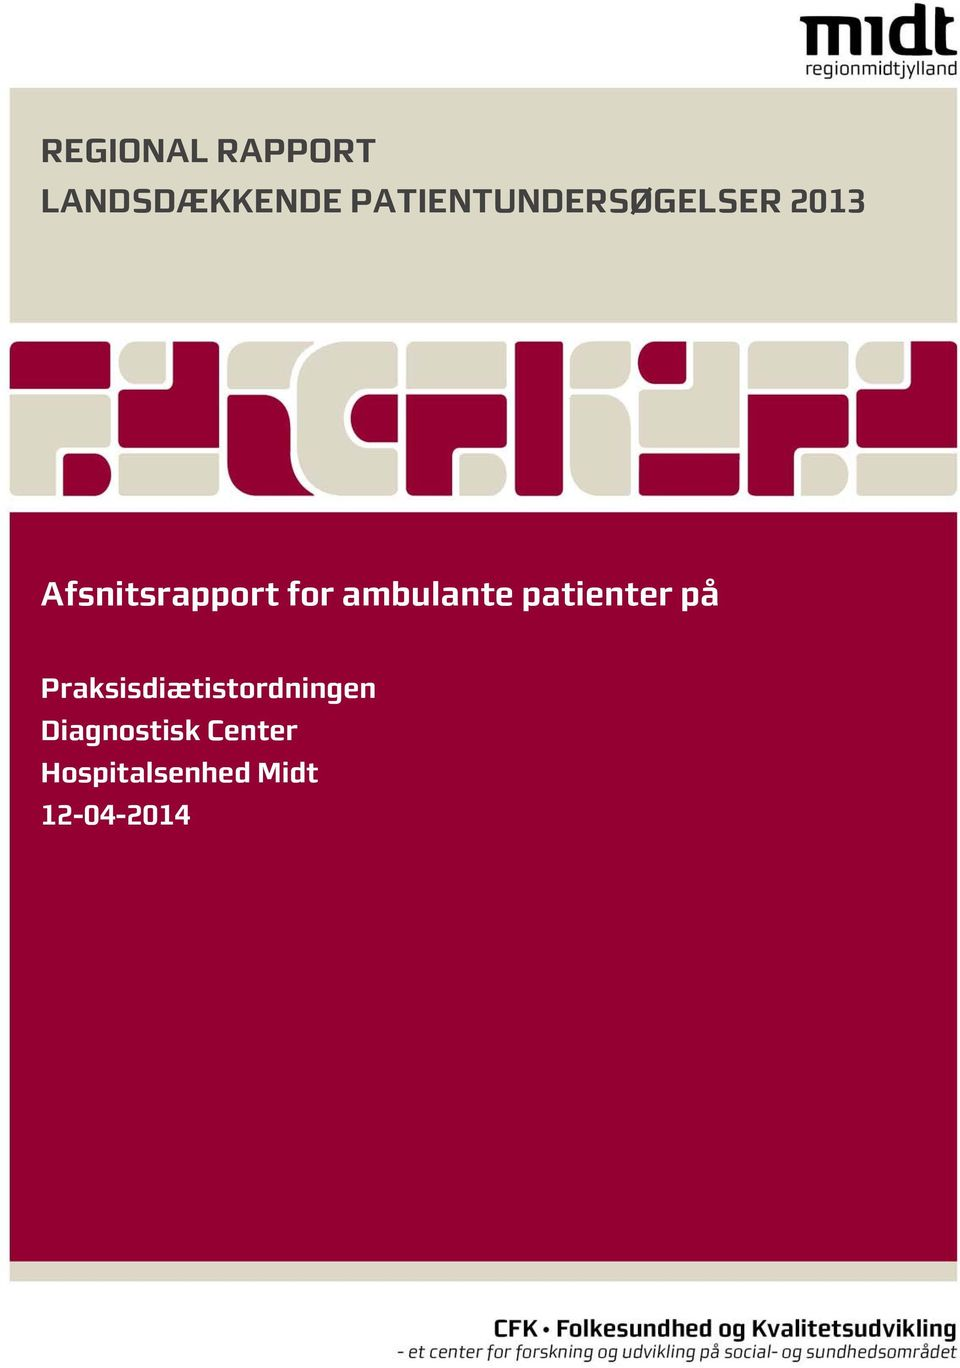 for ambulante patienter på